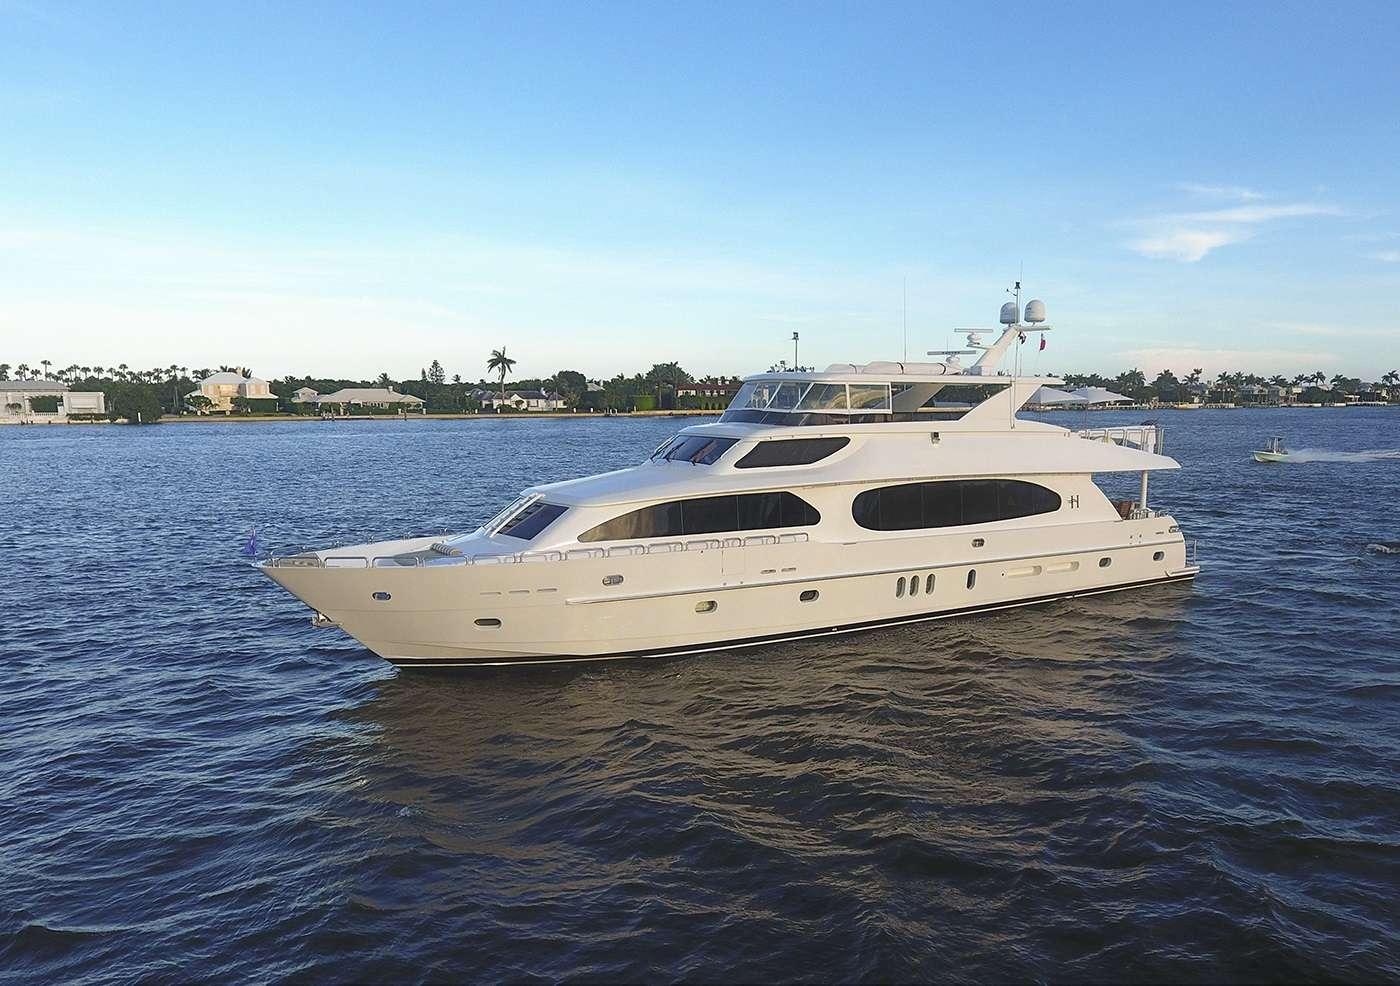 Power Yacht 'Power', 8 PAX, 5 Crew, 101.00 Ft, 30.00 Meters, Built 2011, Hargrave, Refit Year 2016